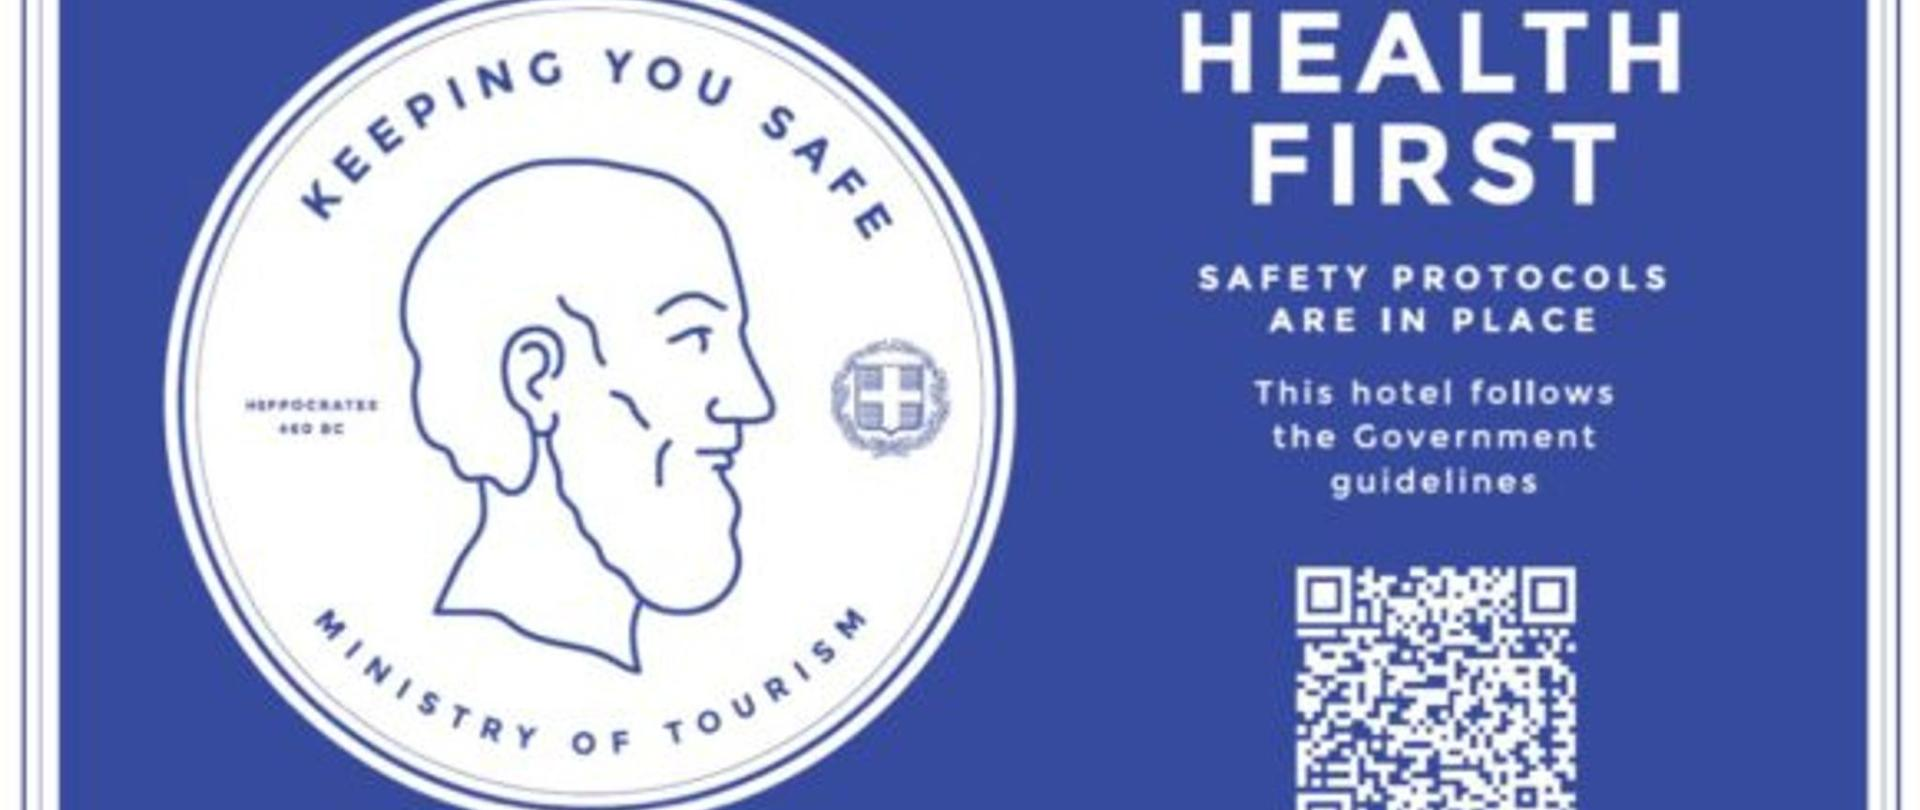 Health-first_badge_large_1-580x361.jpg